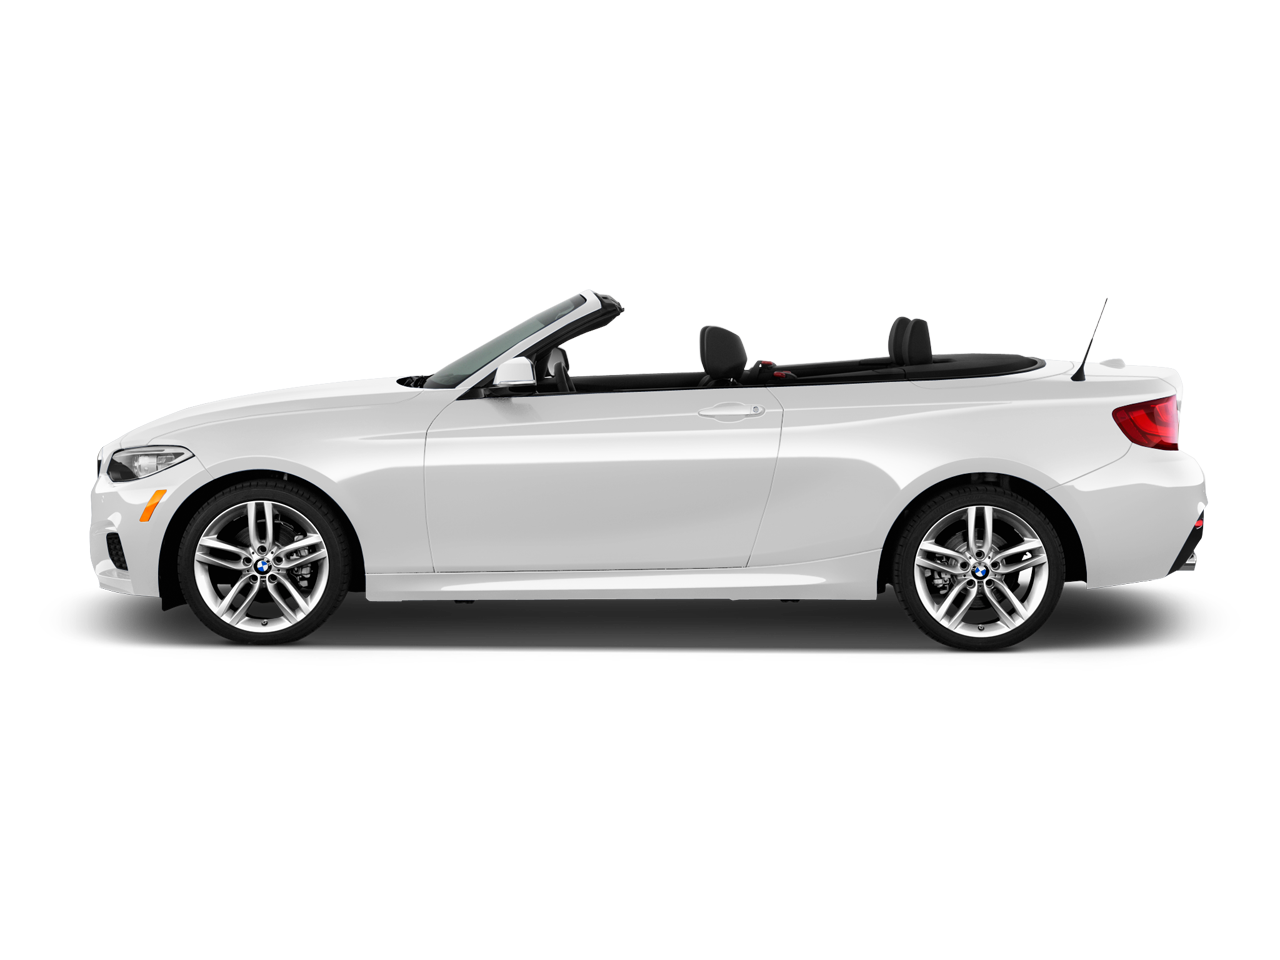 BMW Series For Sale In Plano TX Classic BMW - 4 door convertible bmw